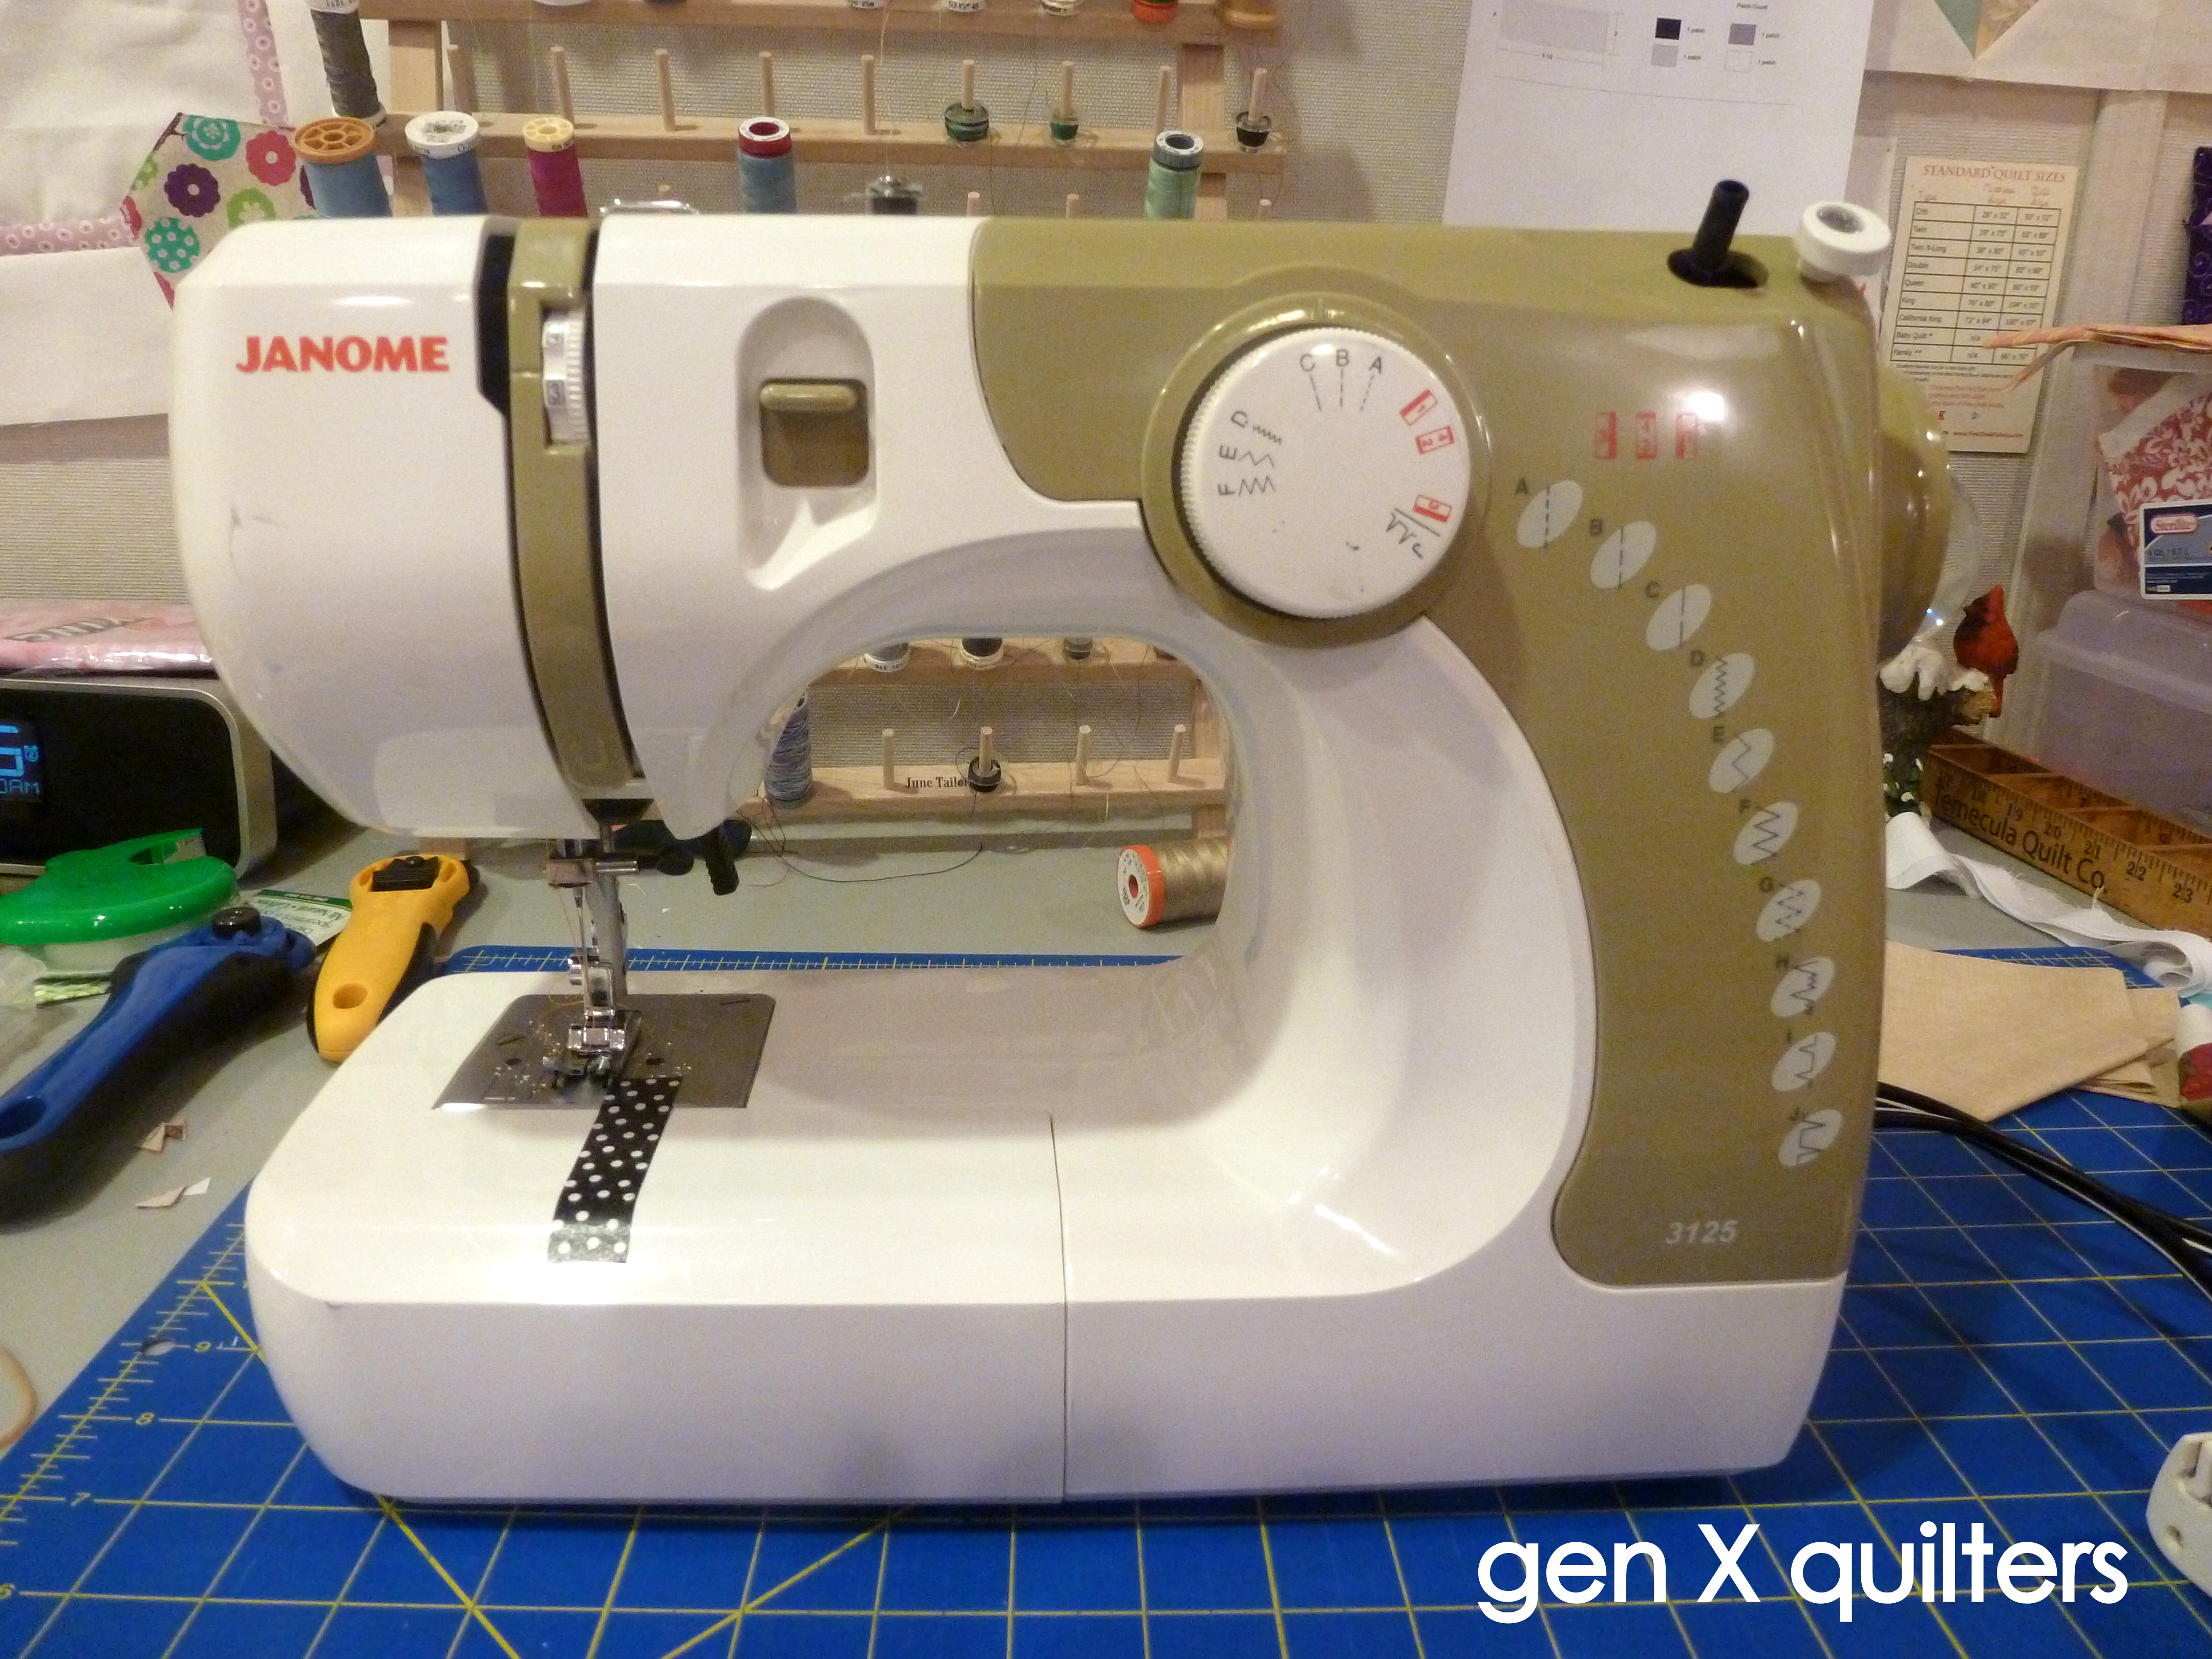 Janome basic machine